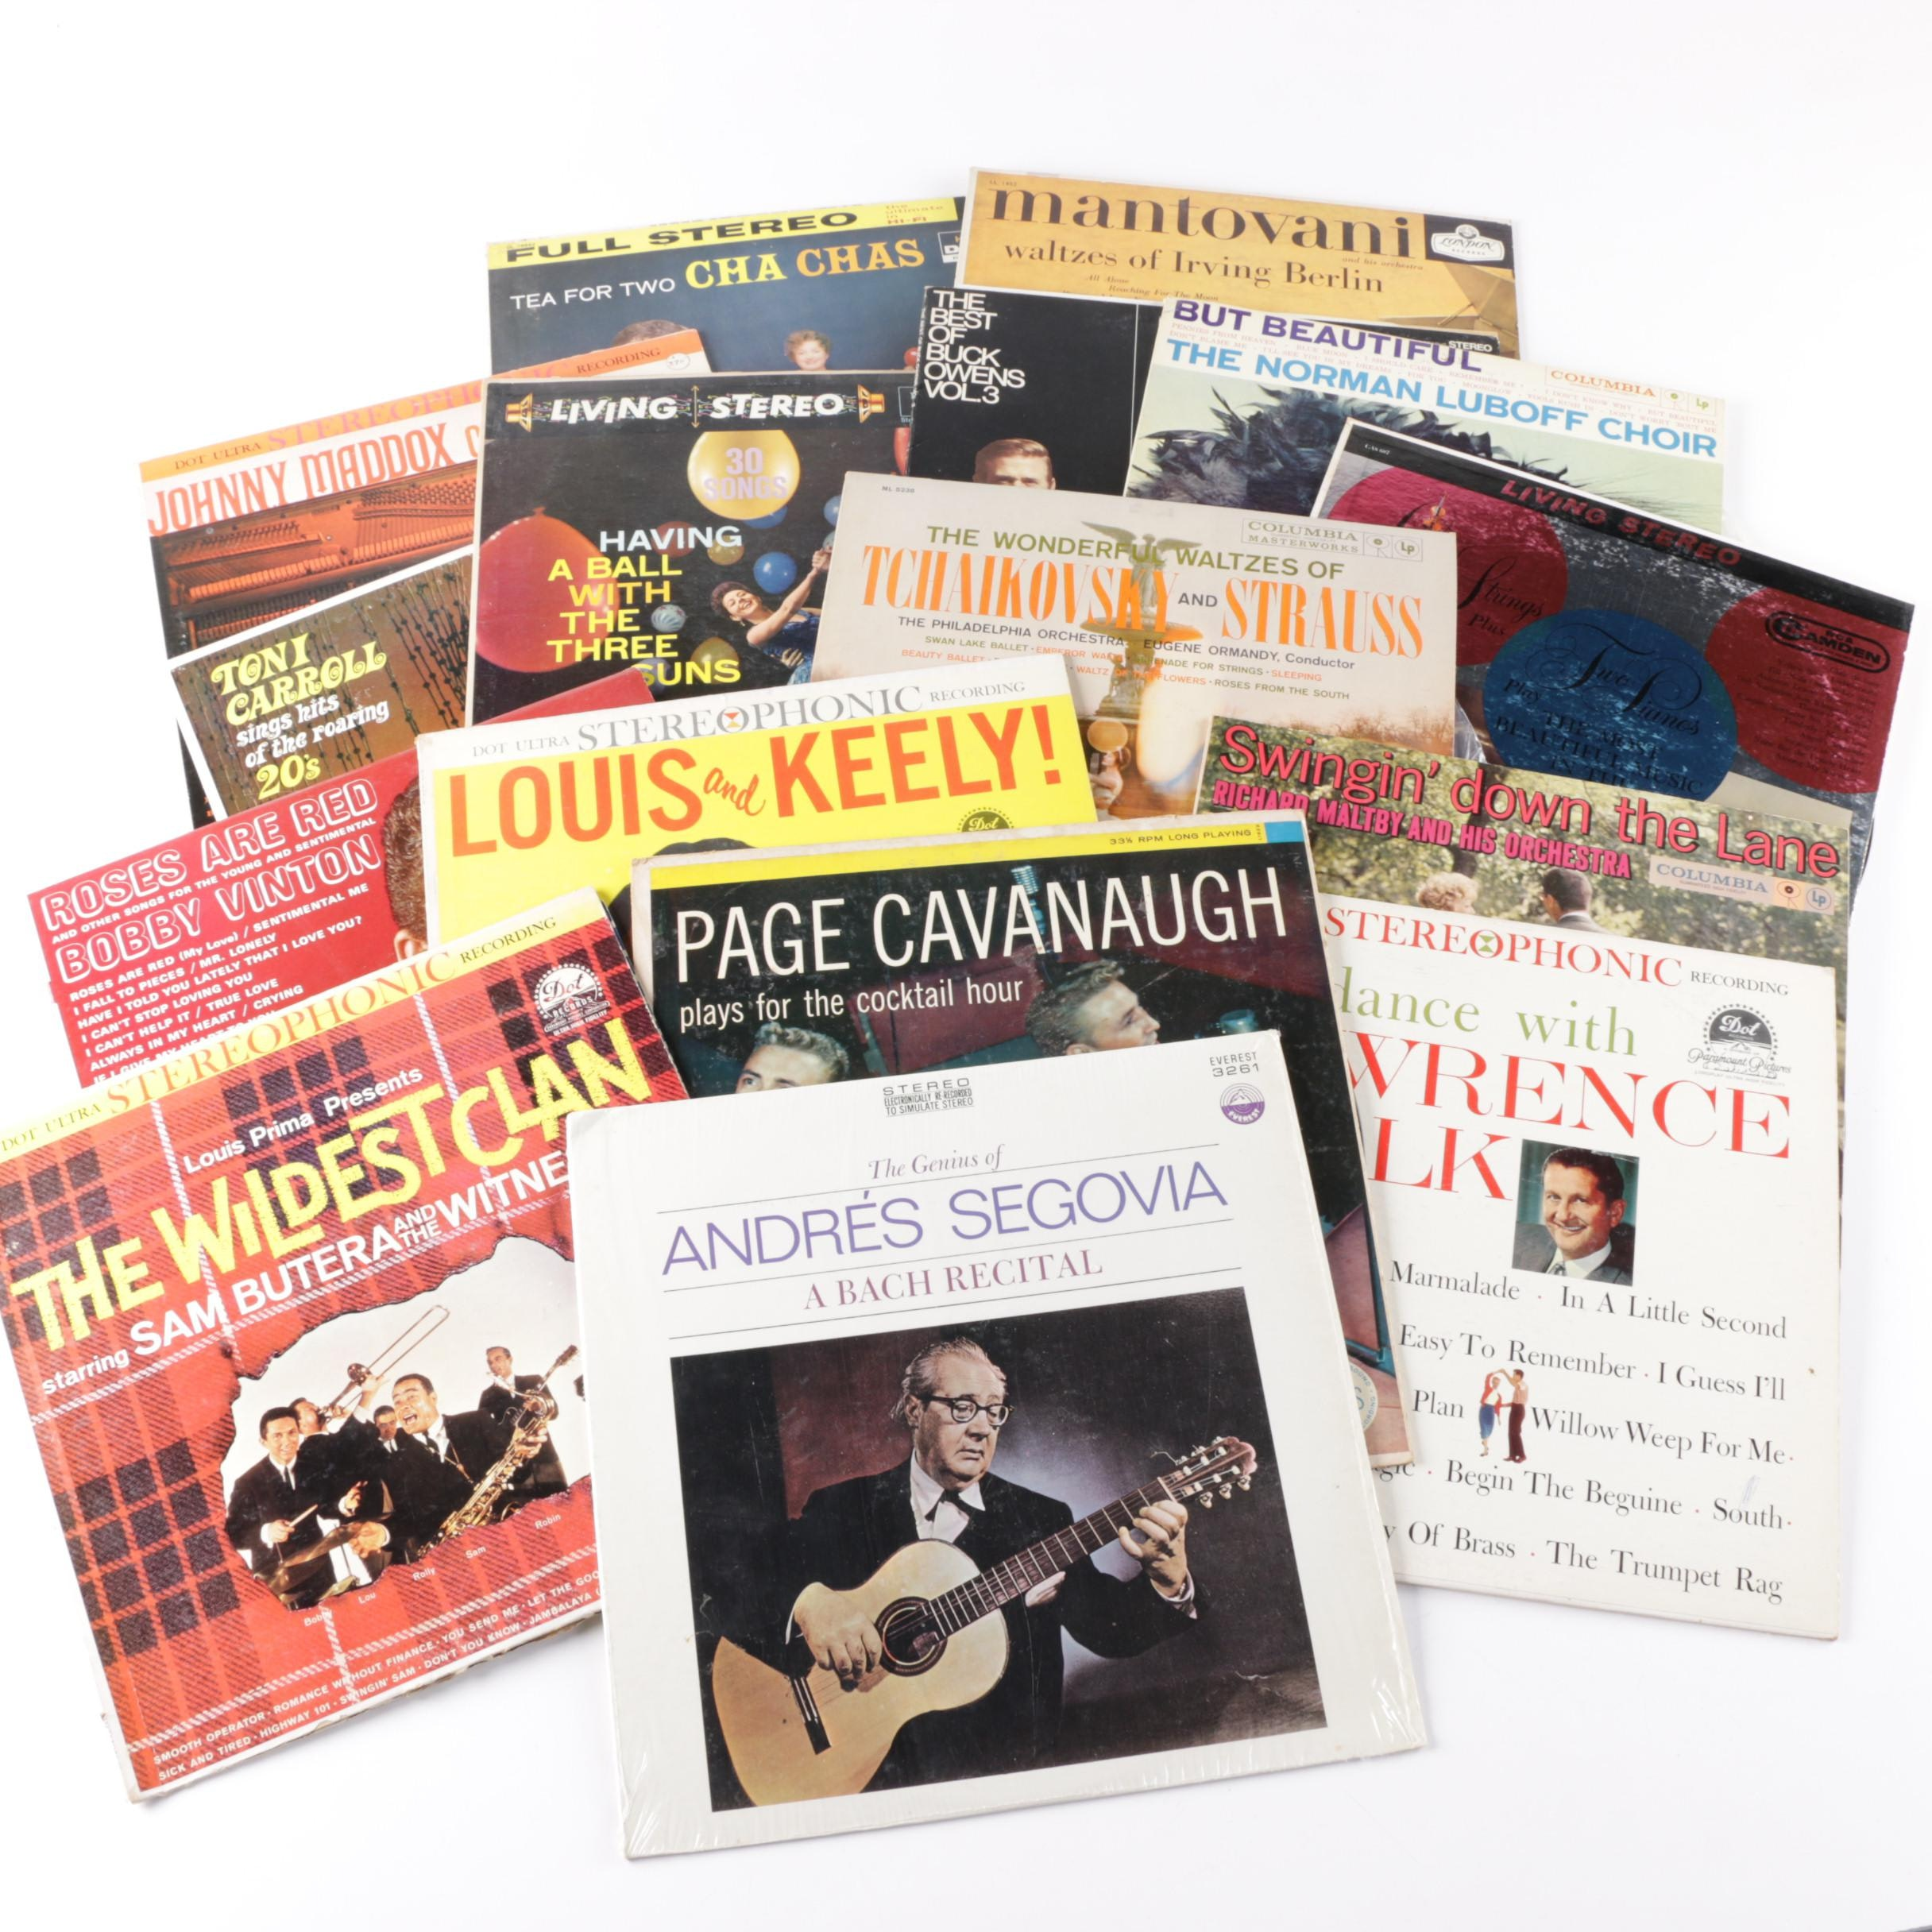 Andres Segovia and Other Easy Listening LPs